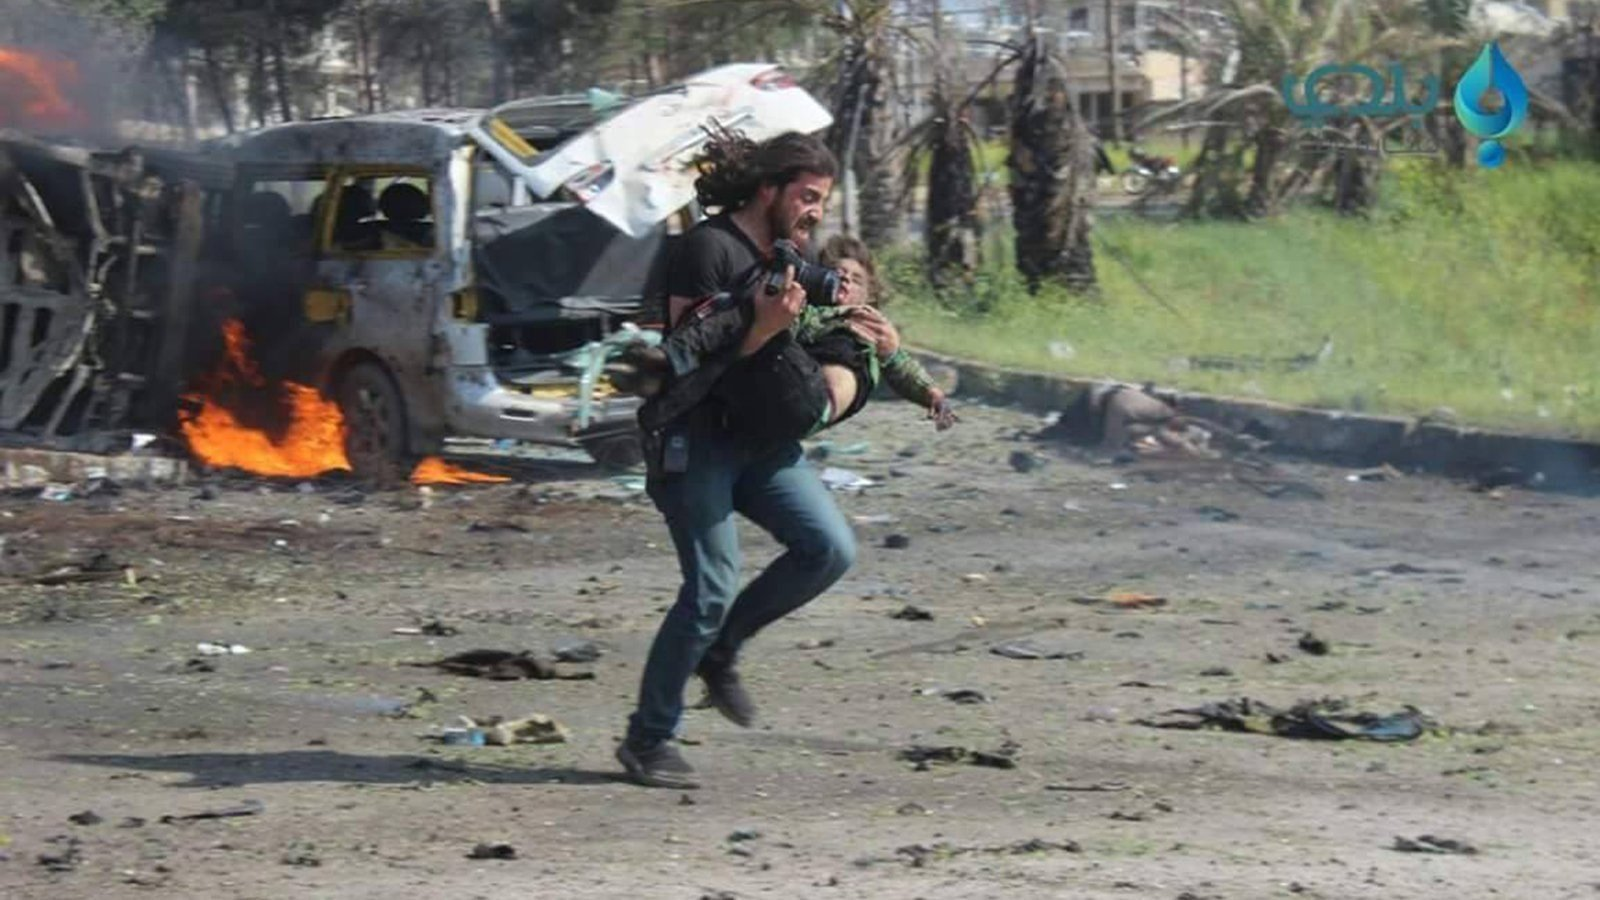 Syria photographer puts down camera, picks up injured boy